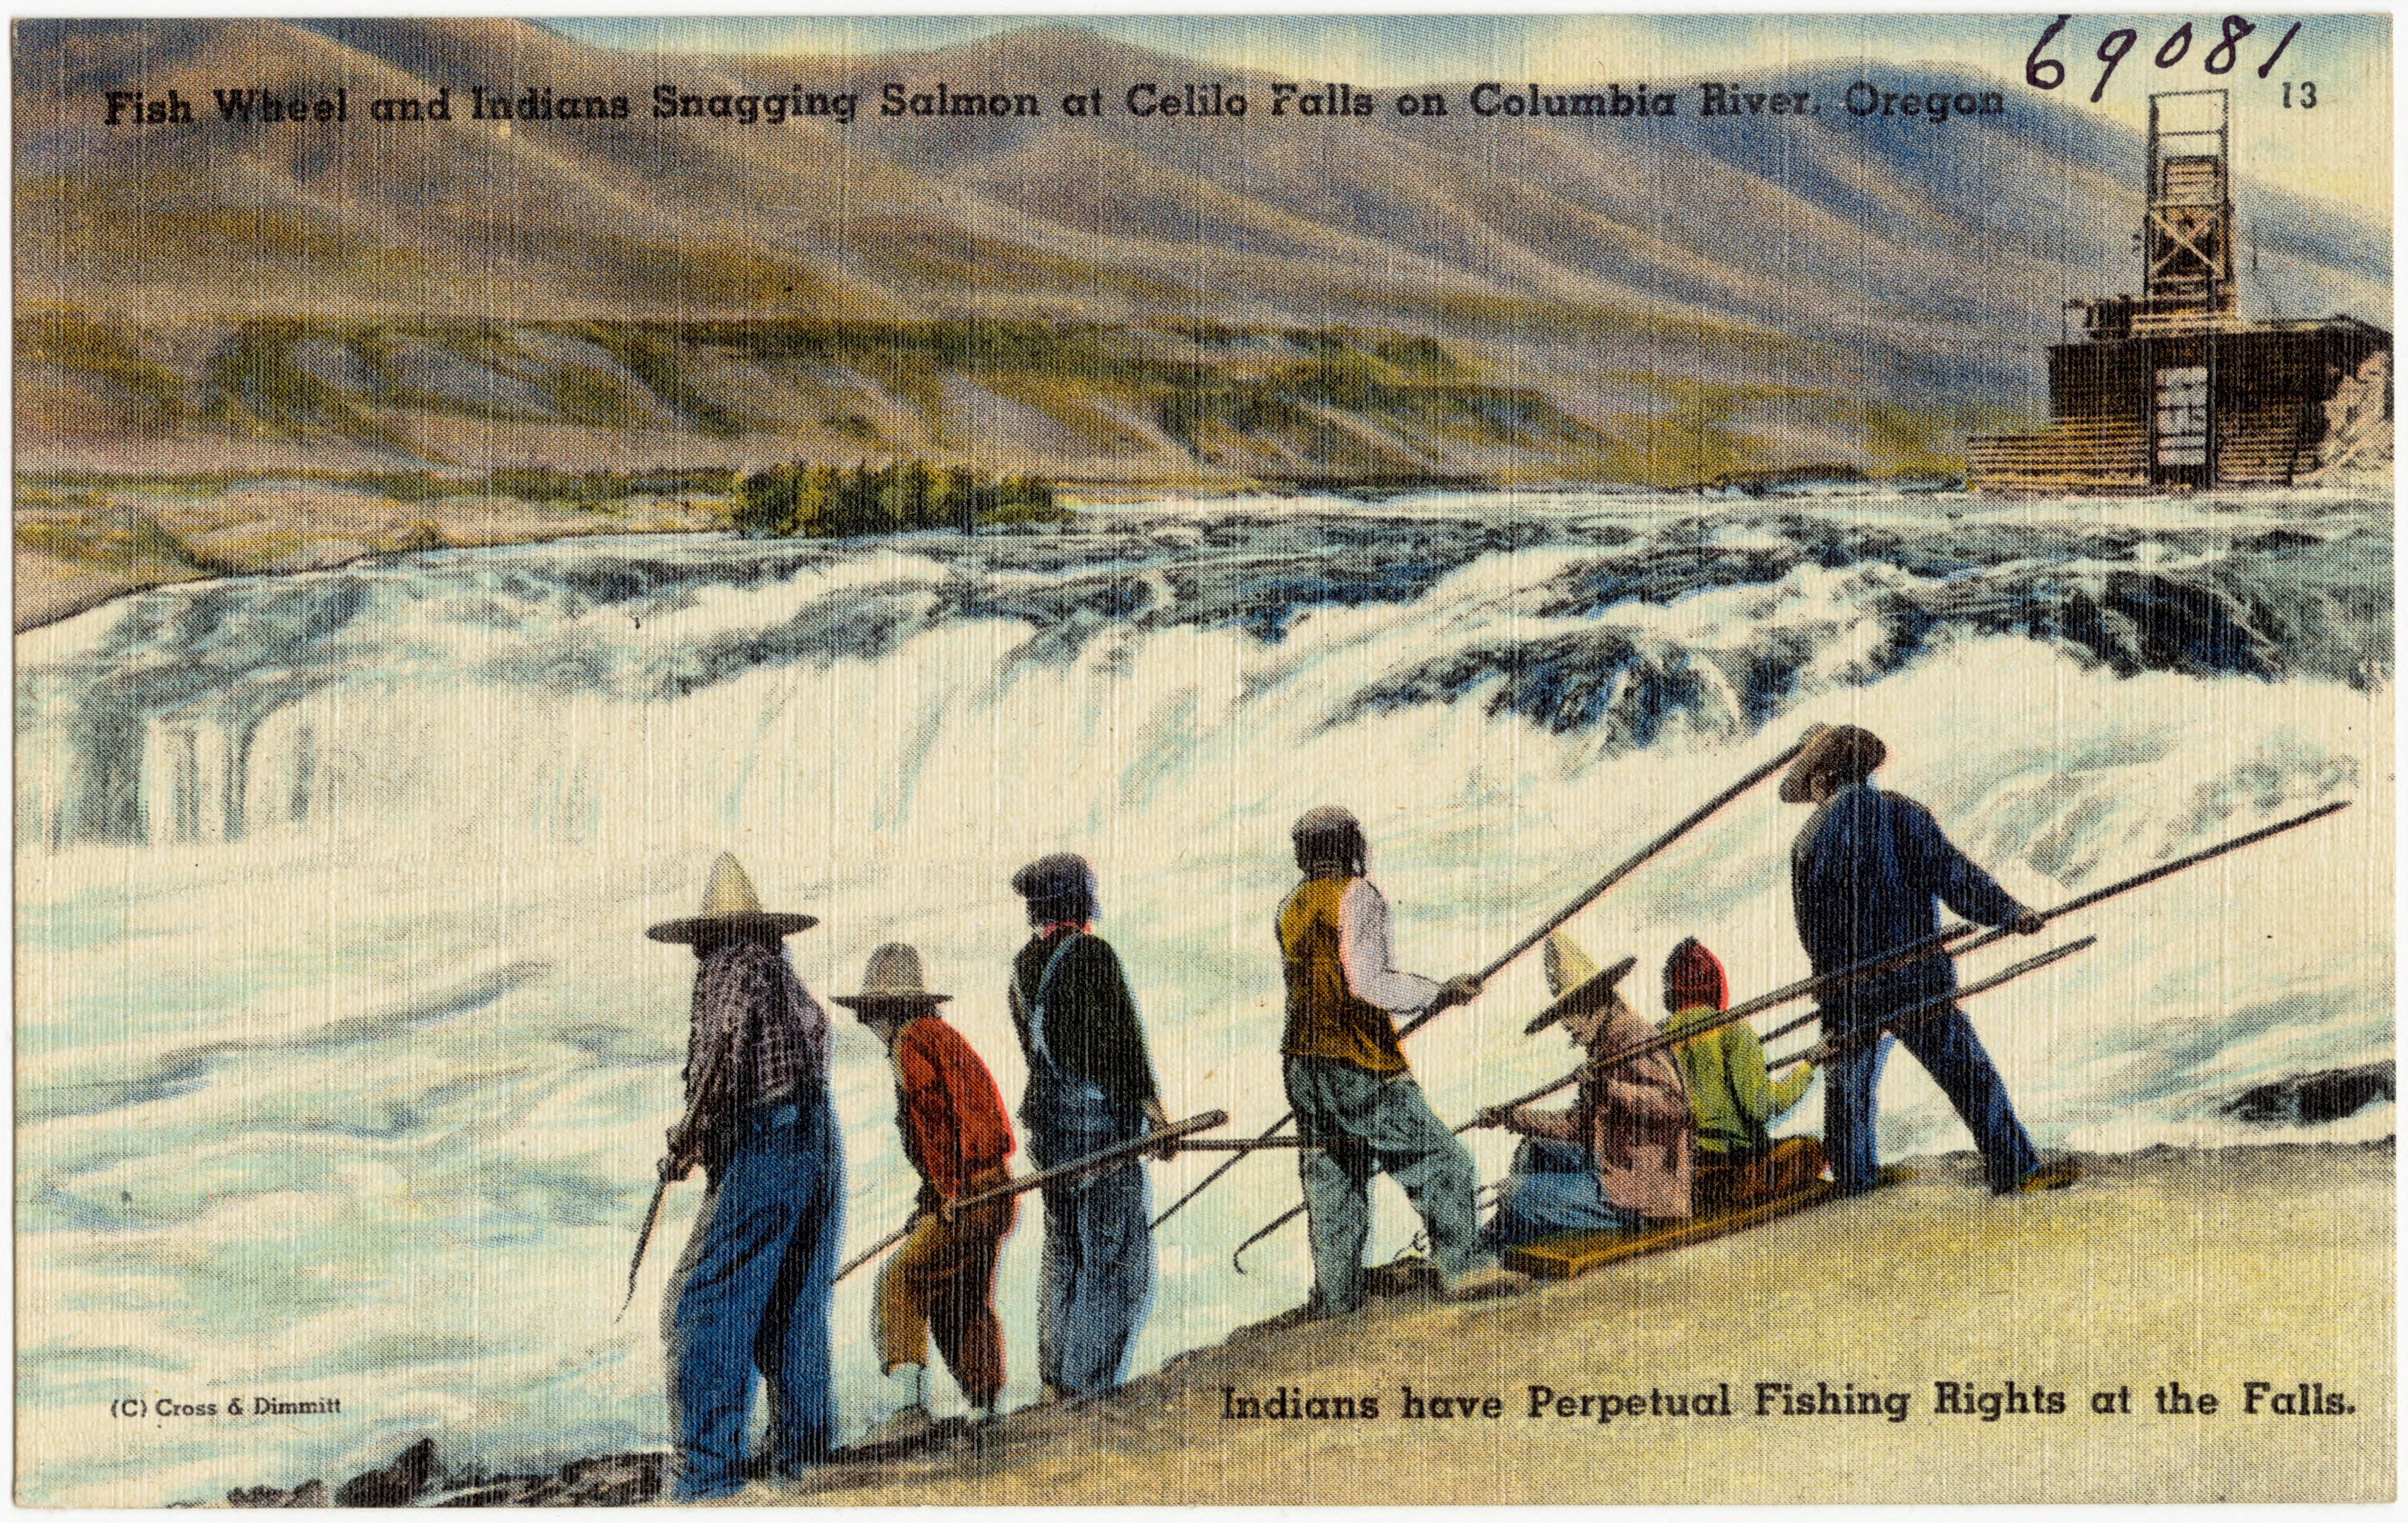 Fishing Moon Chart: Fish Wheel and Indian Snagging Salmon at Celilo Falls on ,Chart